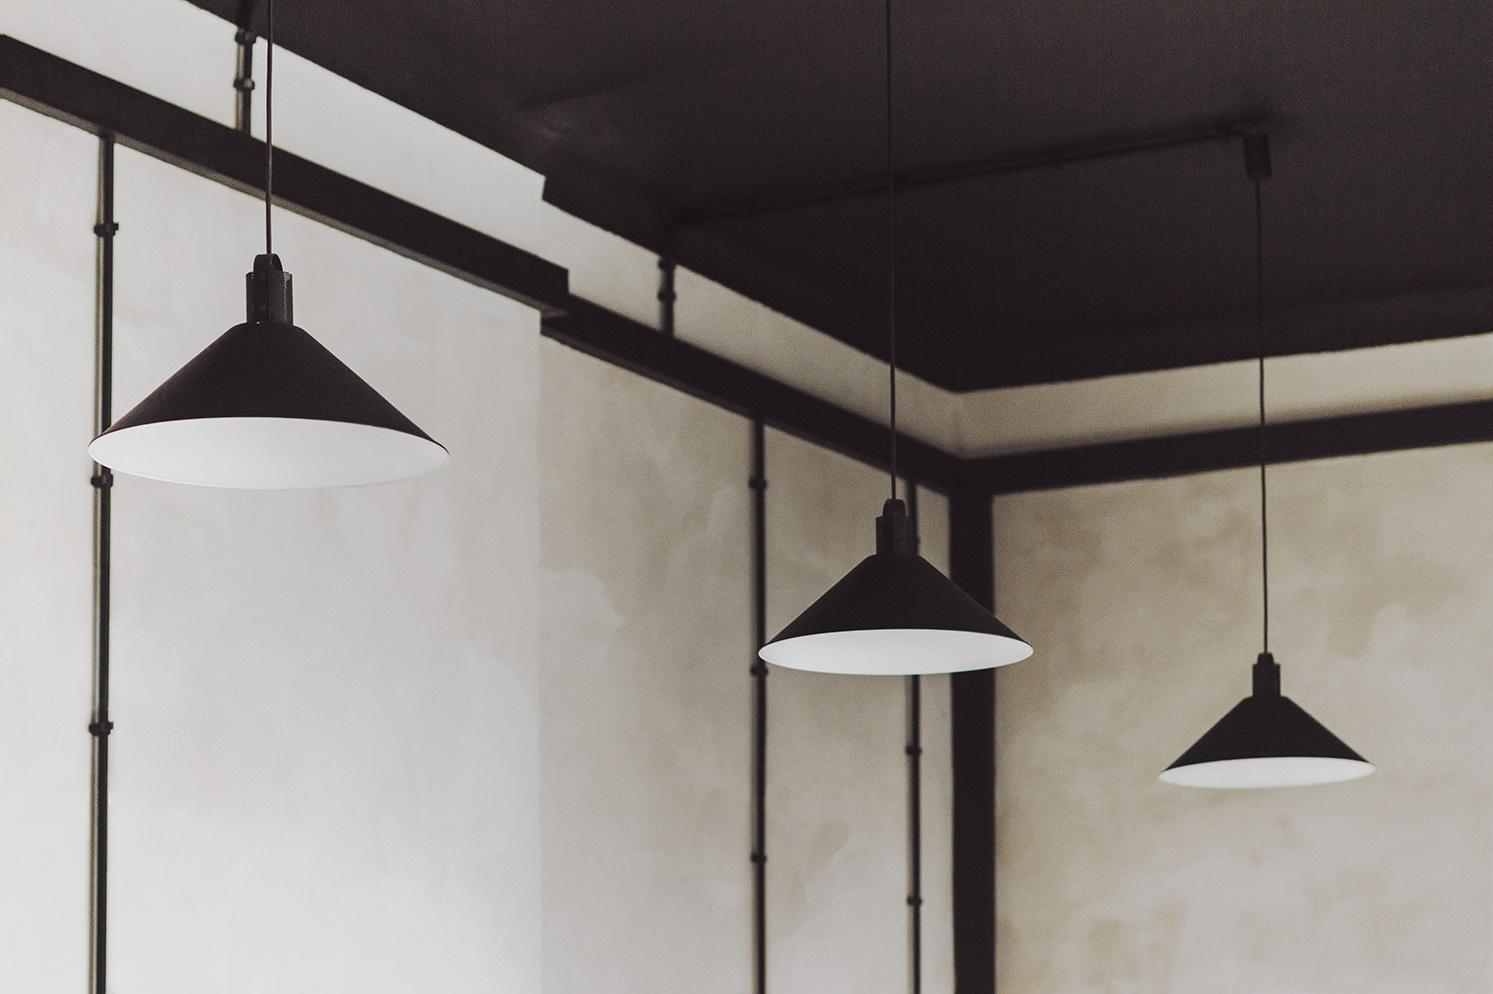 Black Light Shades - Industrial style apartment with meeting room